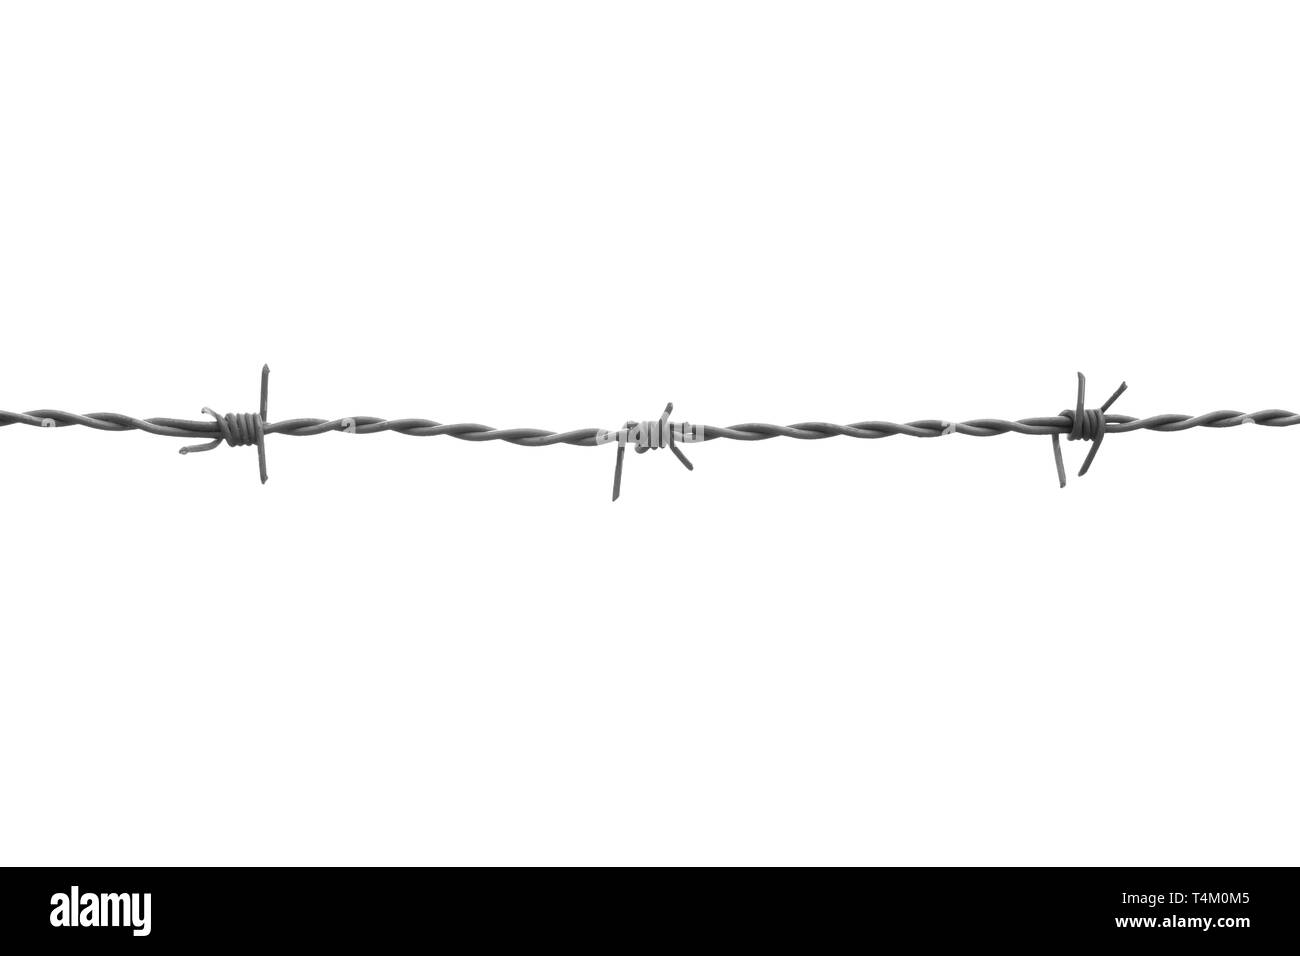 One line of gray barbed wire with three knots. Isolated on white background - Stock Image